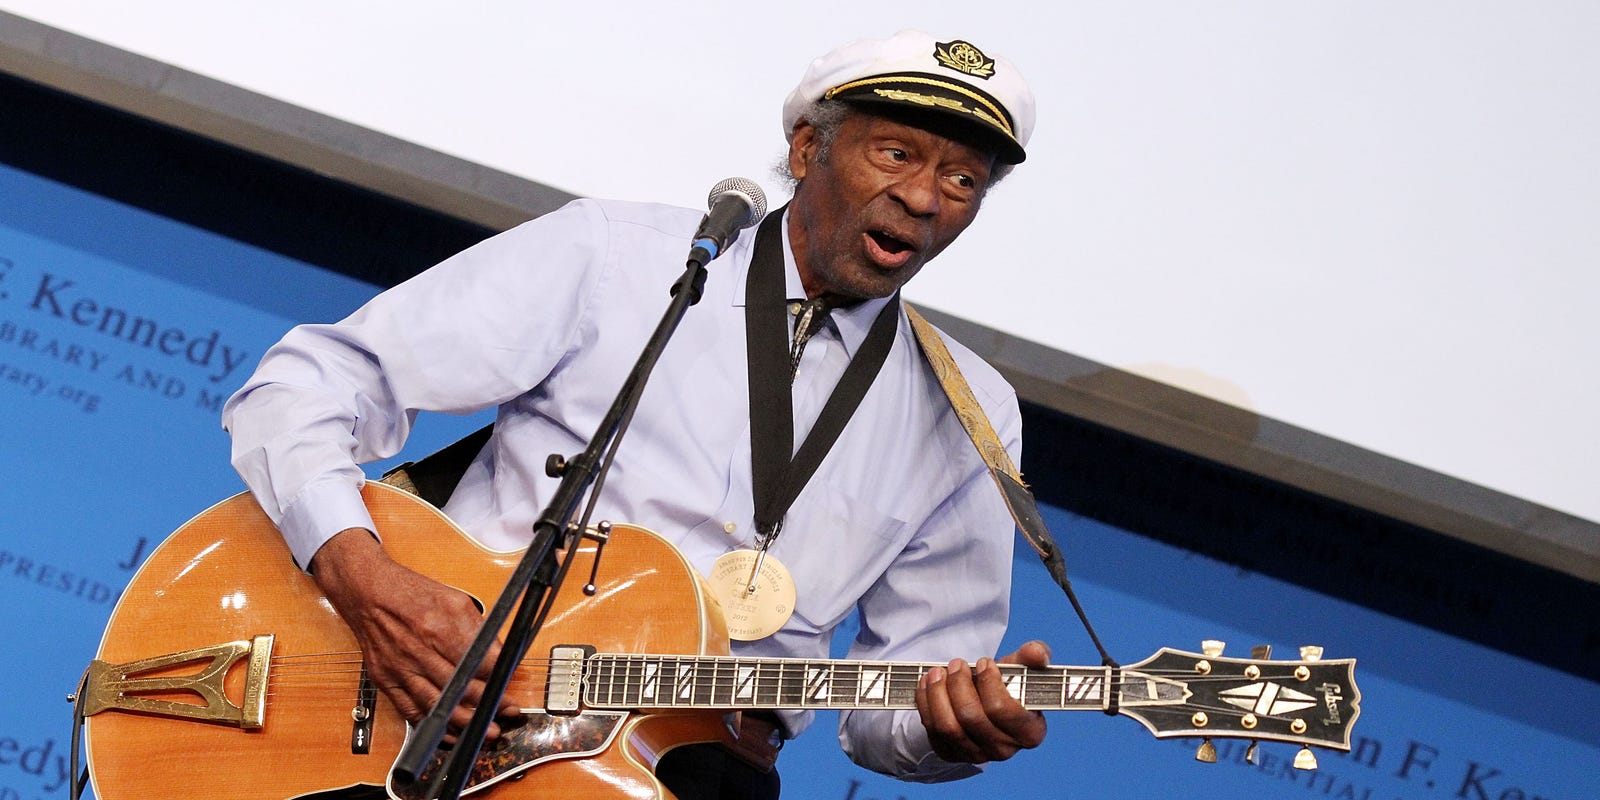 Rock N Roll Legend Chuck Berry Dies At 90 Radio Wave Diagram Http Hollywoodbollywood Co In Hoadmin